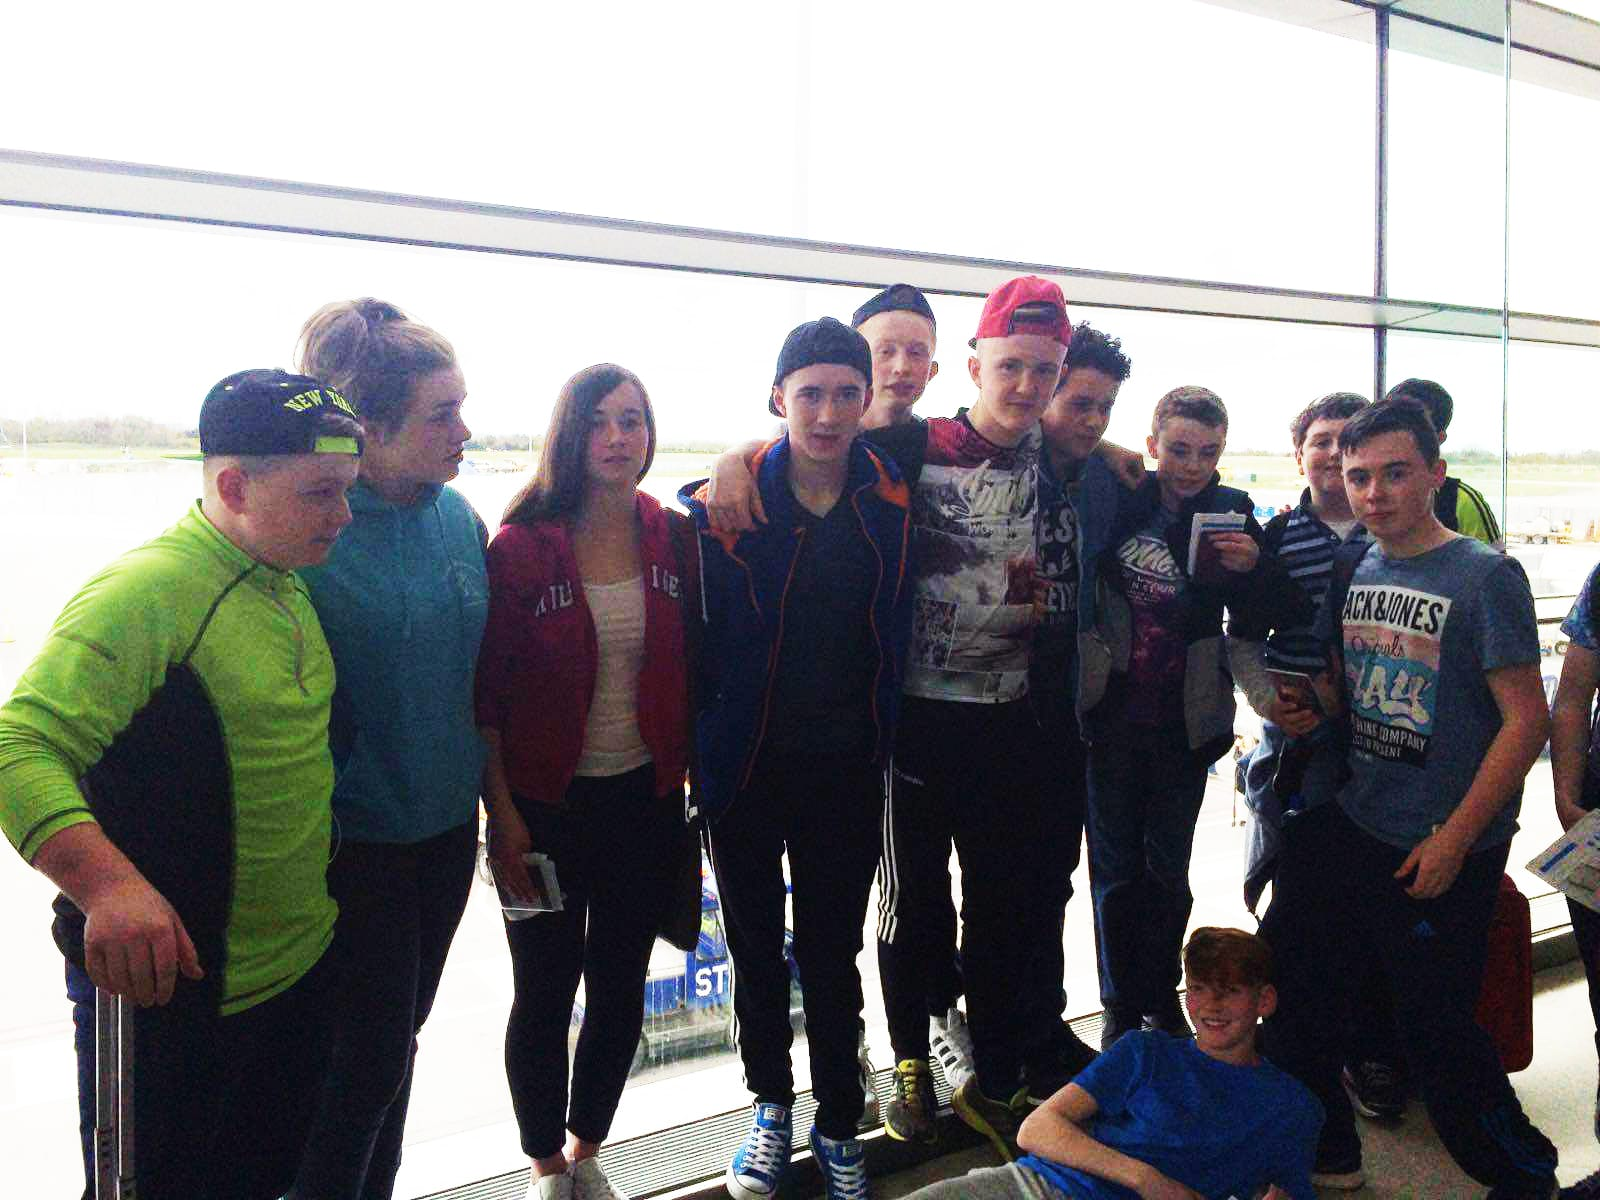 April 2016: Desmond College 2nd Year Students at the airport waiting to go on the flight to Barcelona for their School Tour